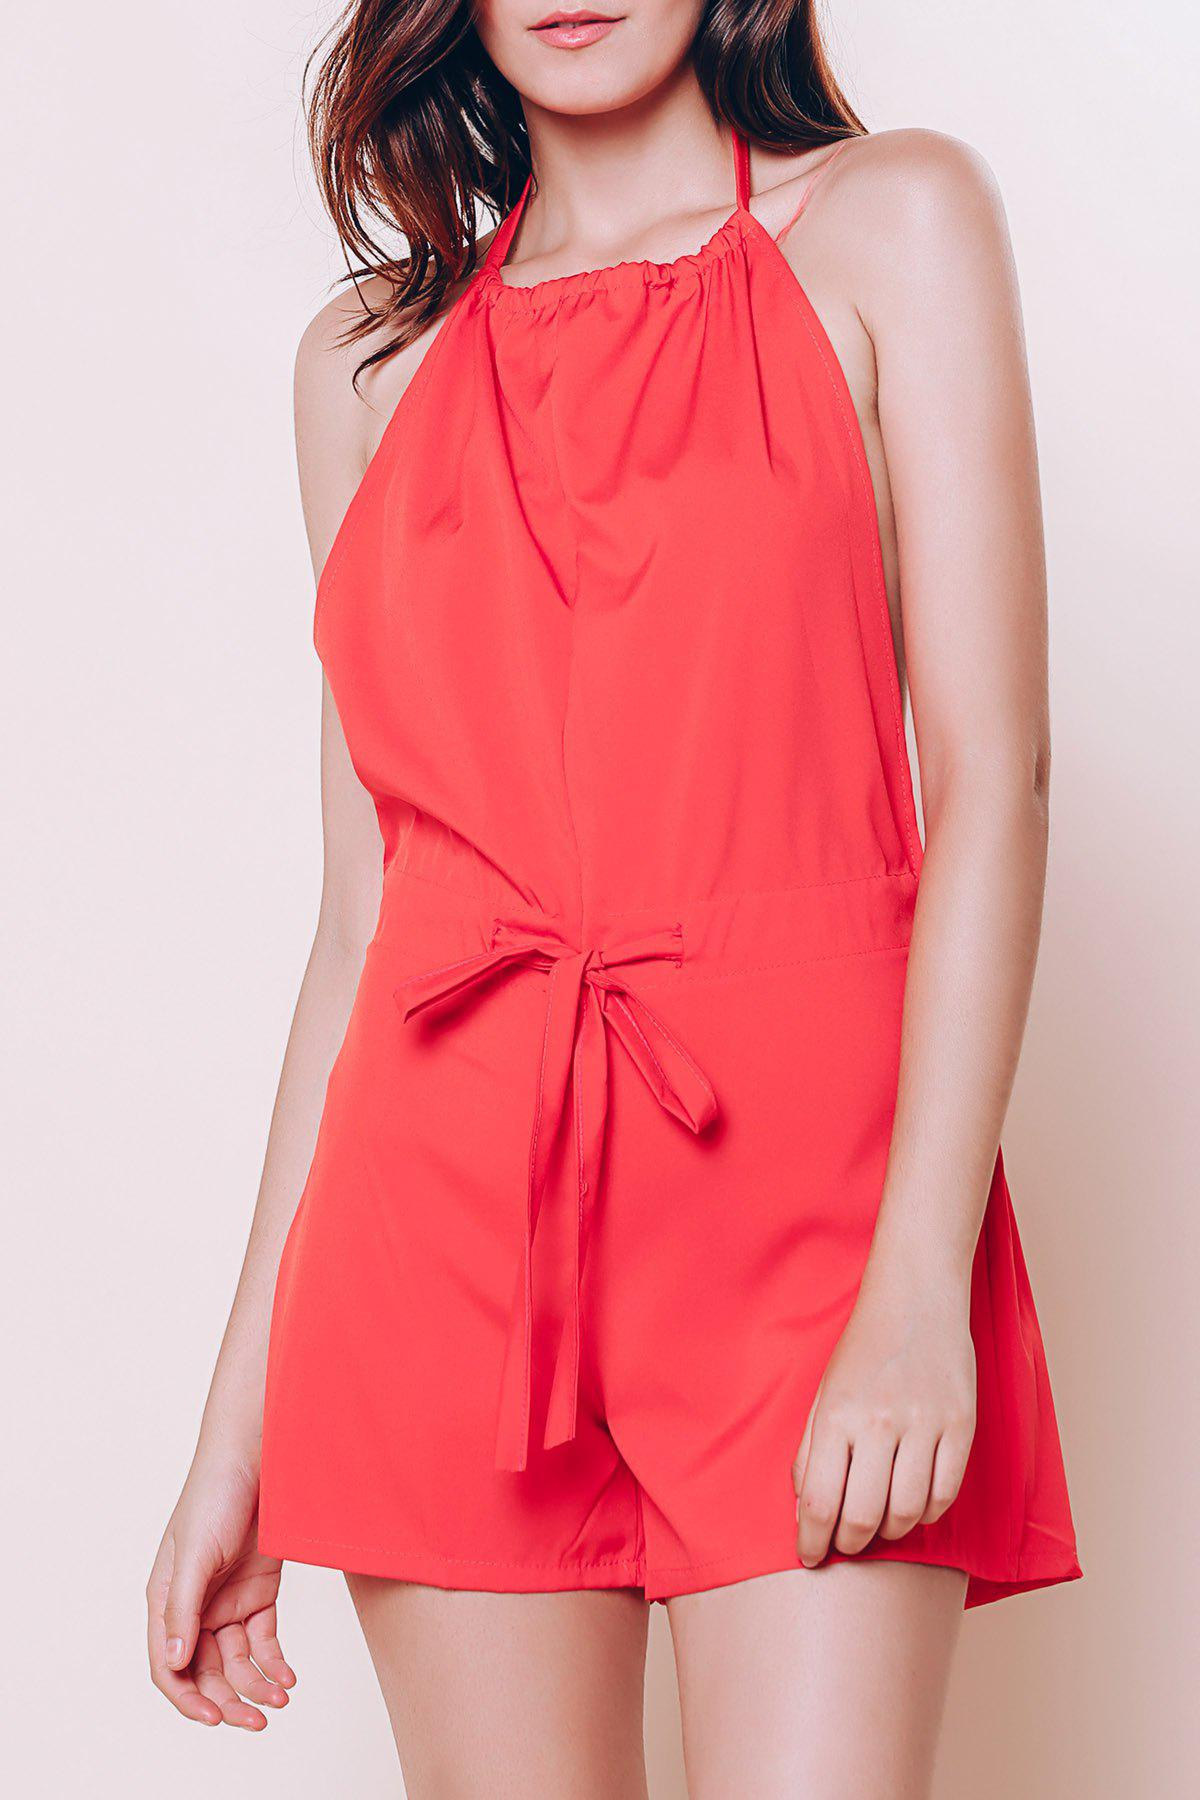 Trendy Sleeveless Backless Halter Red Romper For Women